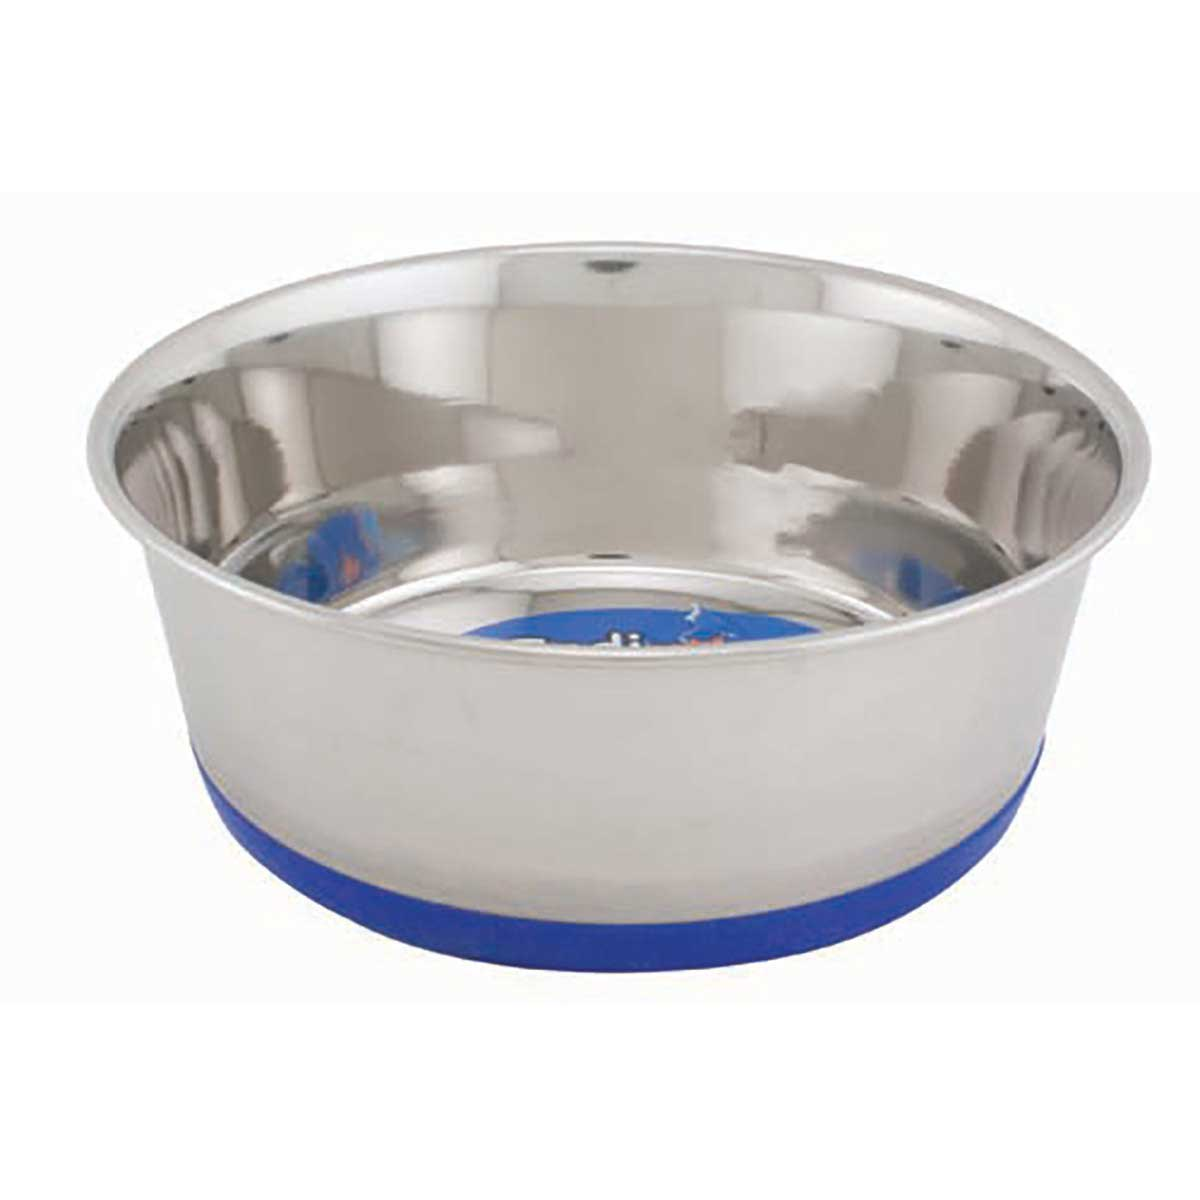 Indipets Premium Dishes With Bonded Rubber Base 1 Quart